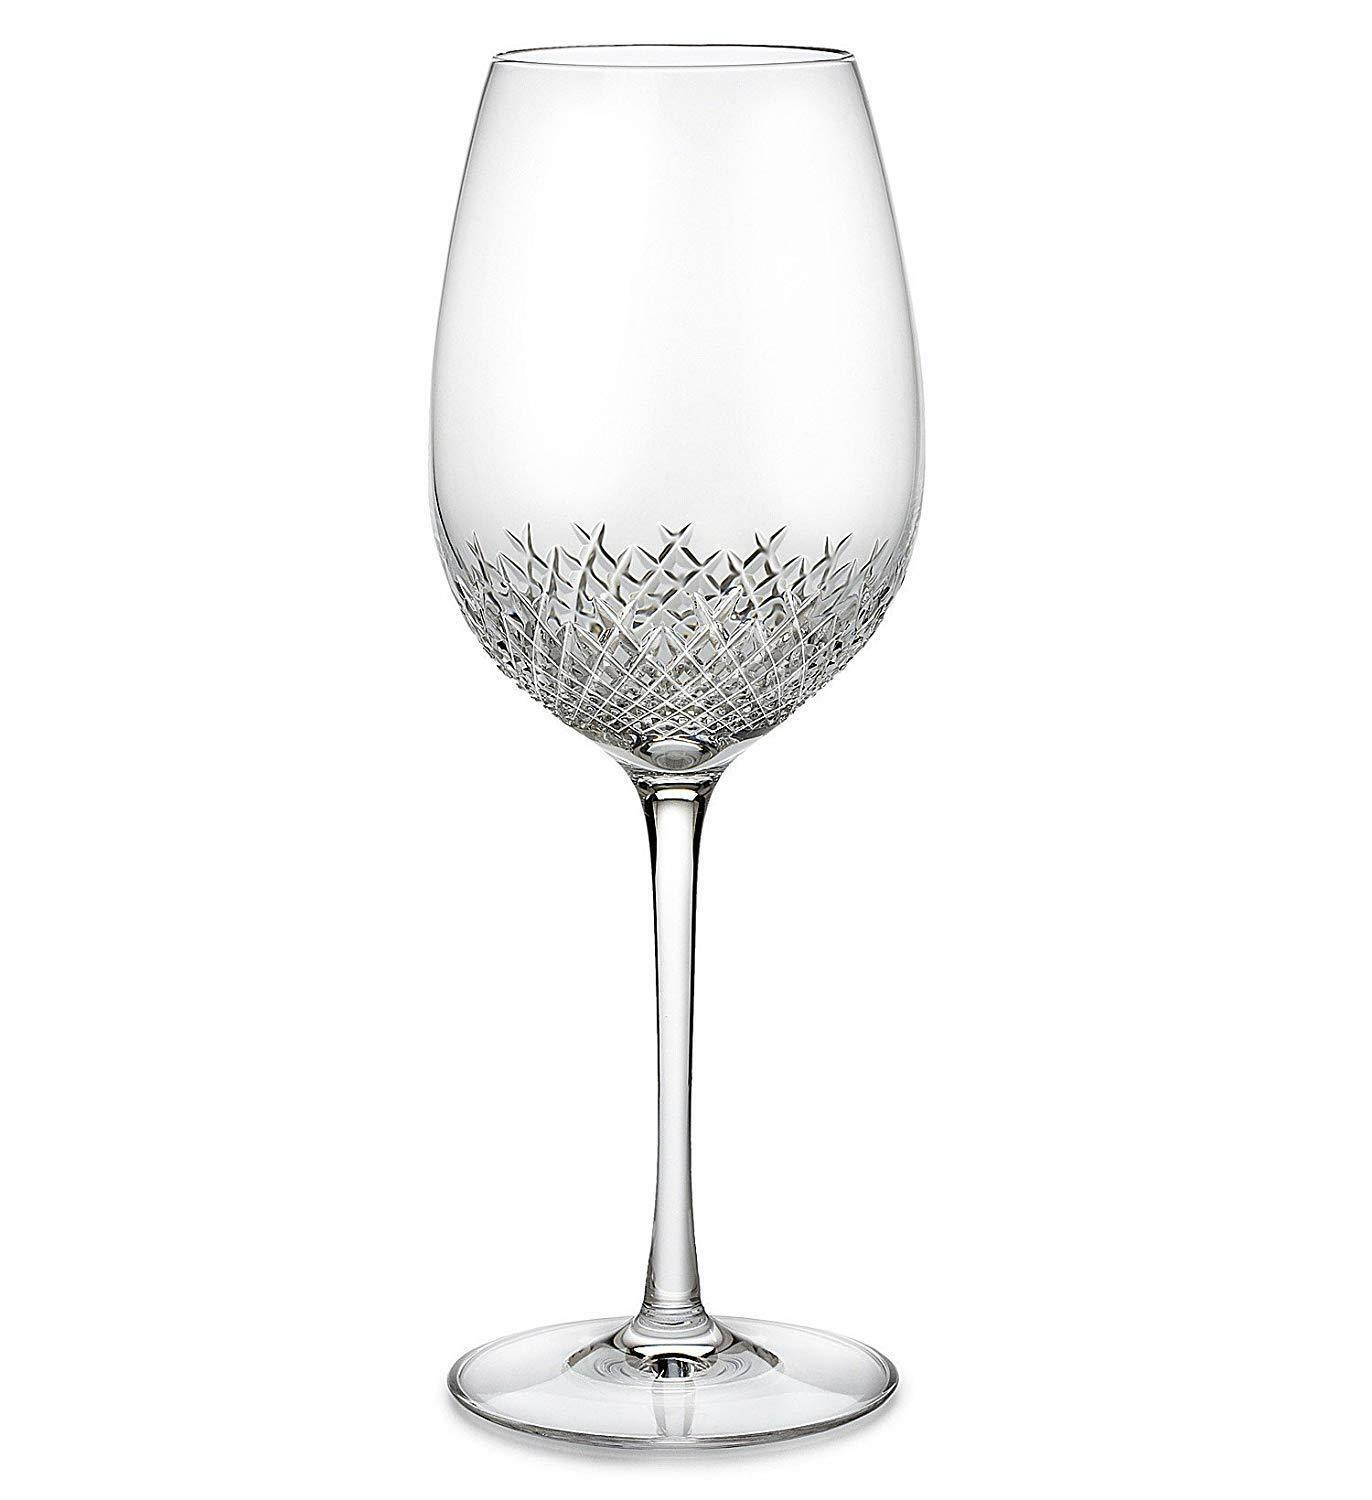 Waterford Crystal Alana Essence Goblet Four Goblets (4) New #151403 Discontinued